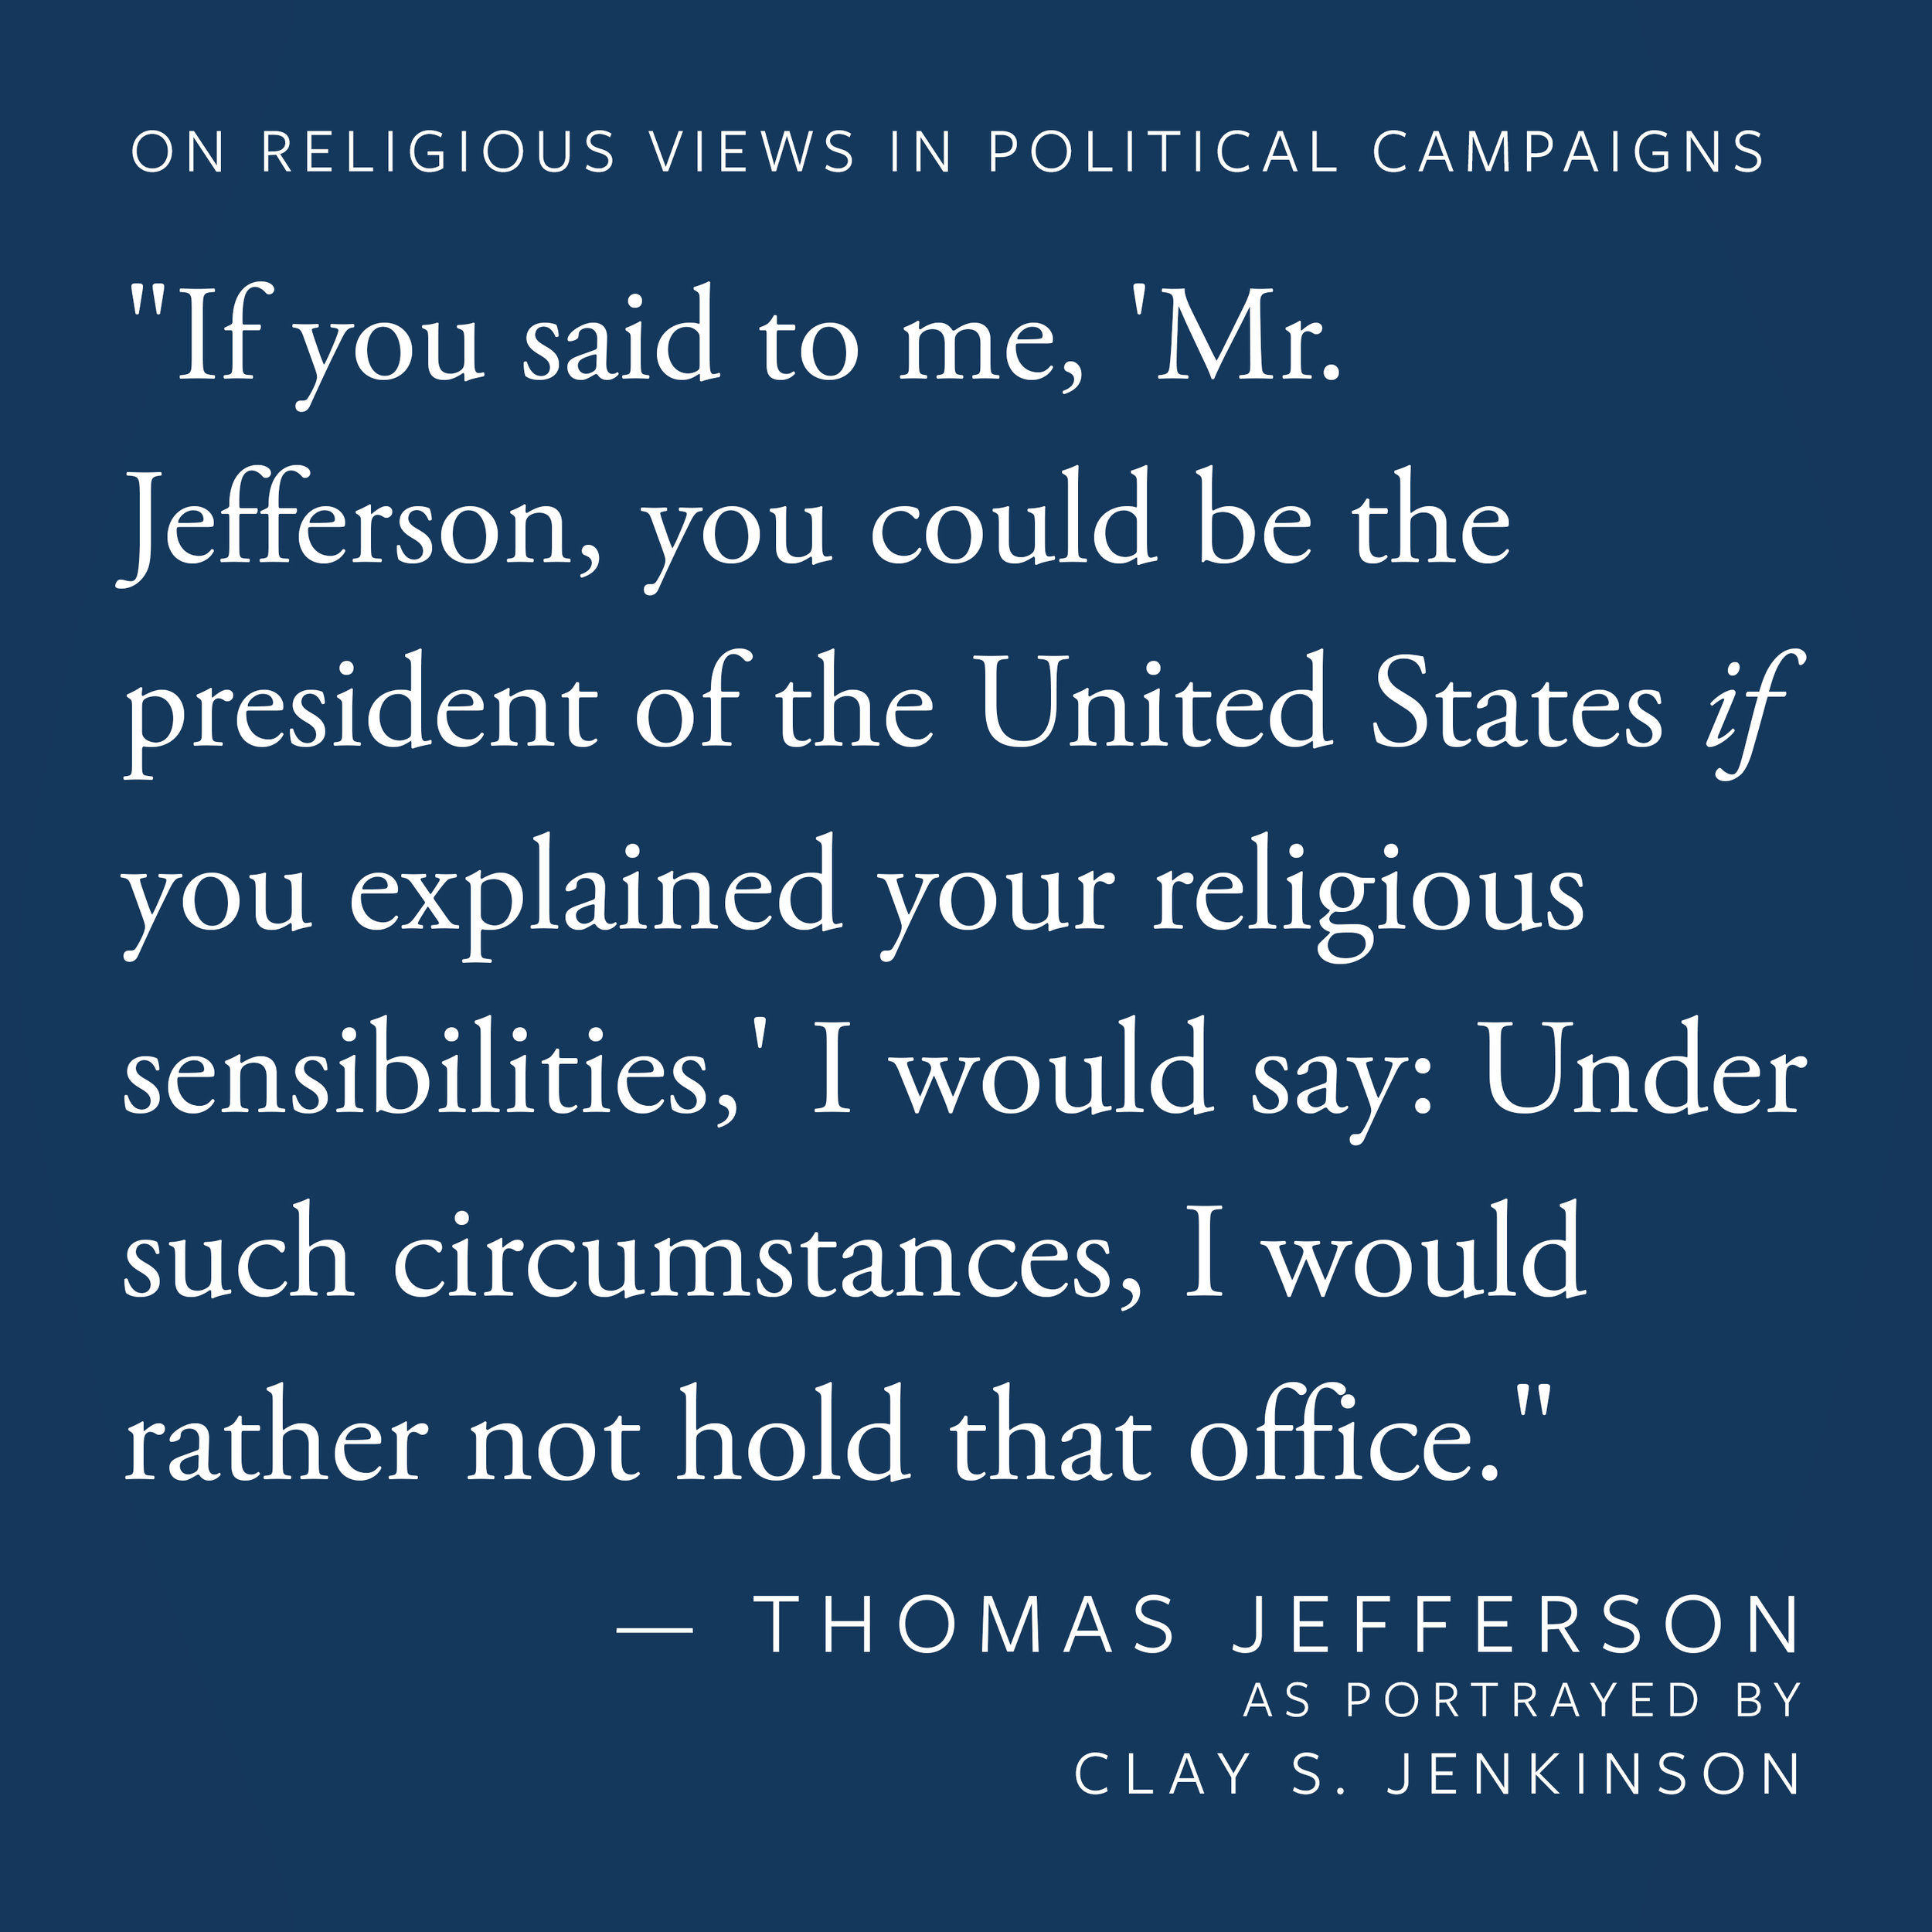 """If you said to me, 'Mr. Jefferson, you could be the president of the United States if you explained your religious sensibilities,' I would say, under such circumstances, I would rather not hold that office."""